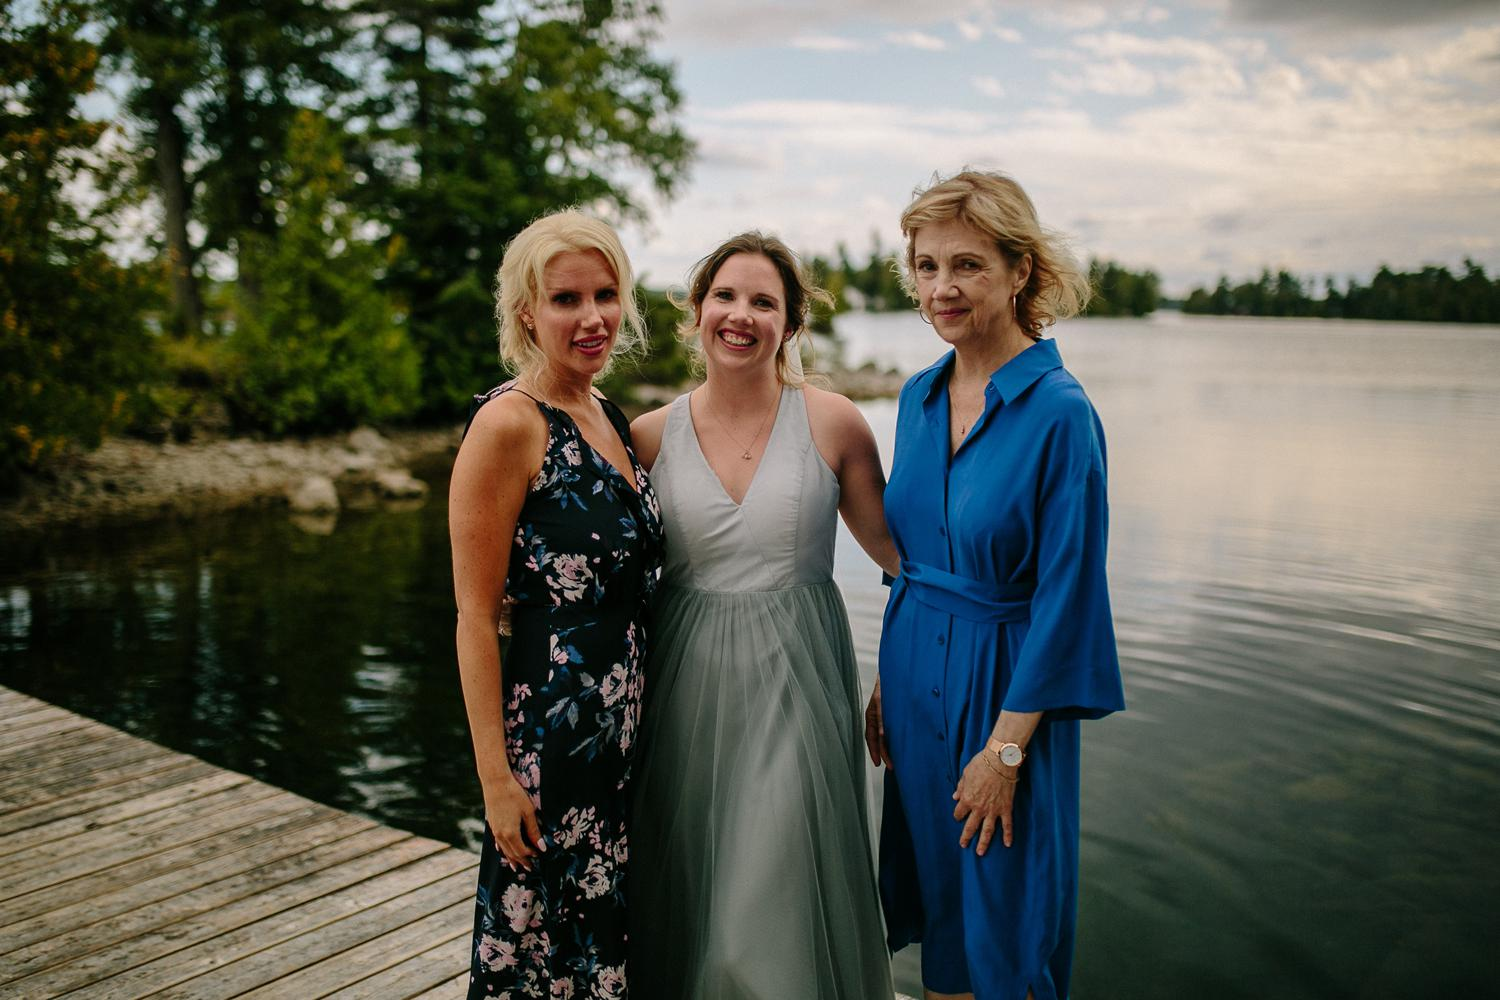 kerry ford photography - small intimate backyard rideau lake island wedding perth ontario-032.jpg